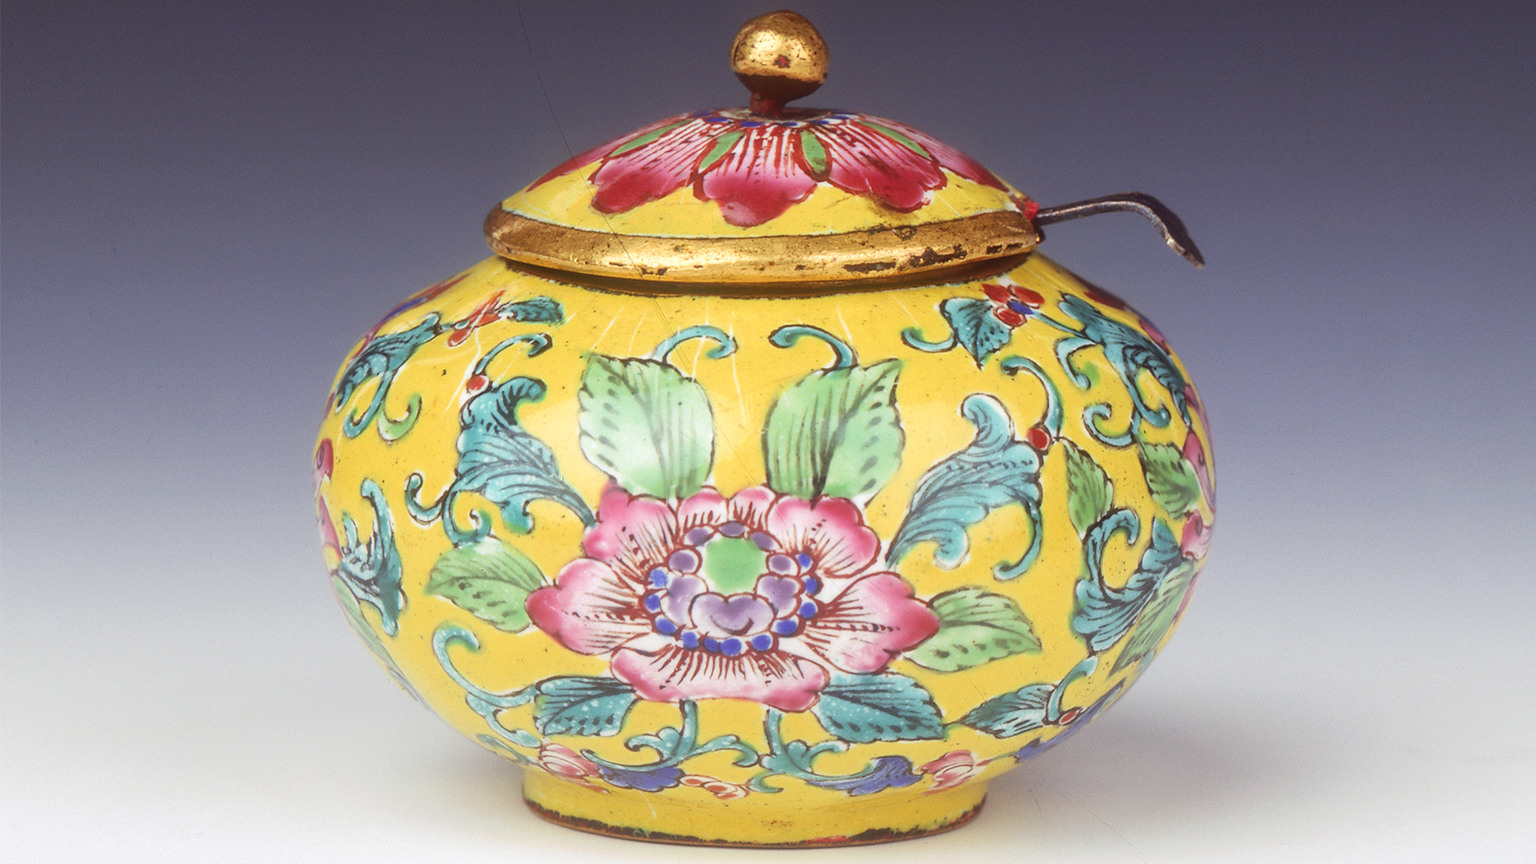 Canton enamel condiment jar and cover made for Vietnamese court. Spoon dated to 1830. Jar dated 1820-40